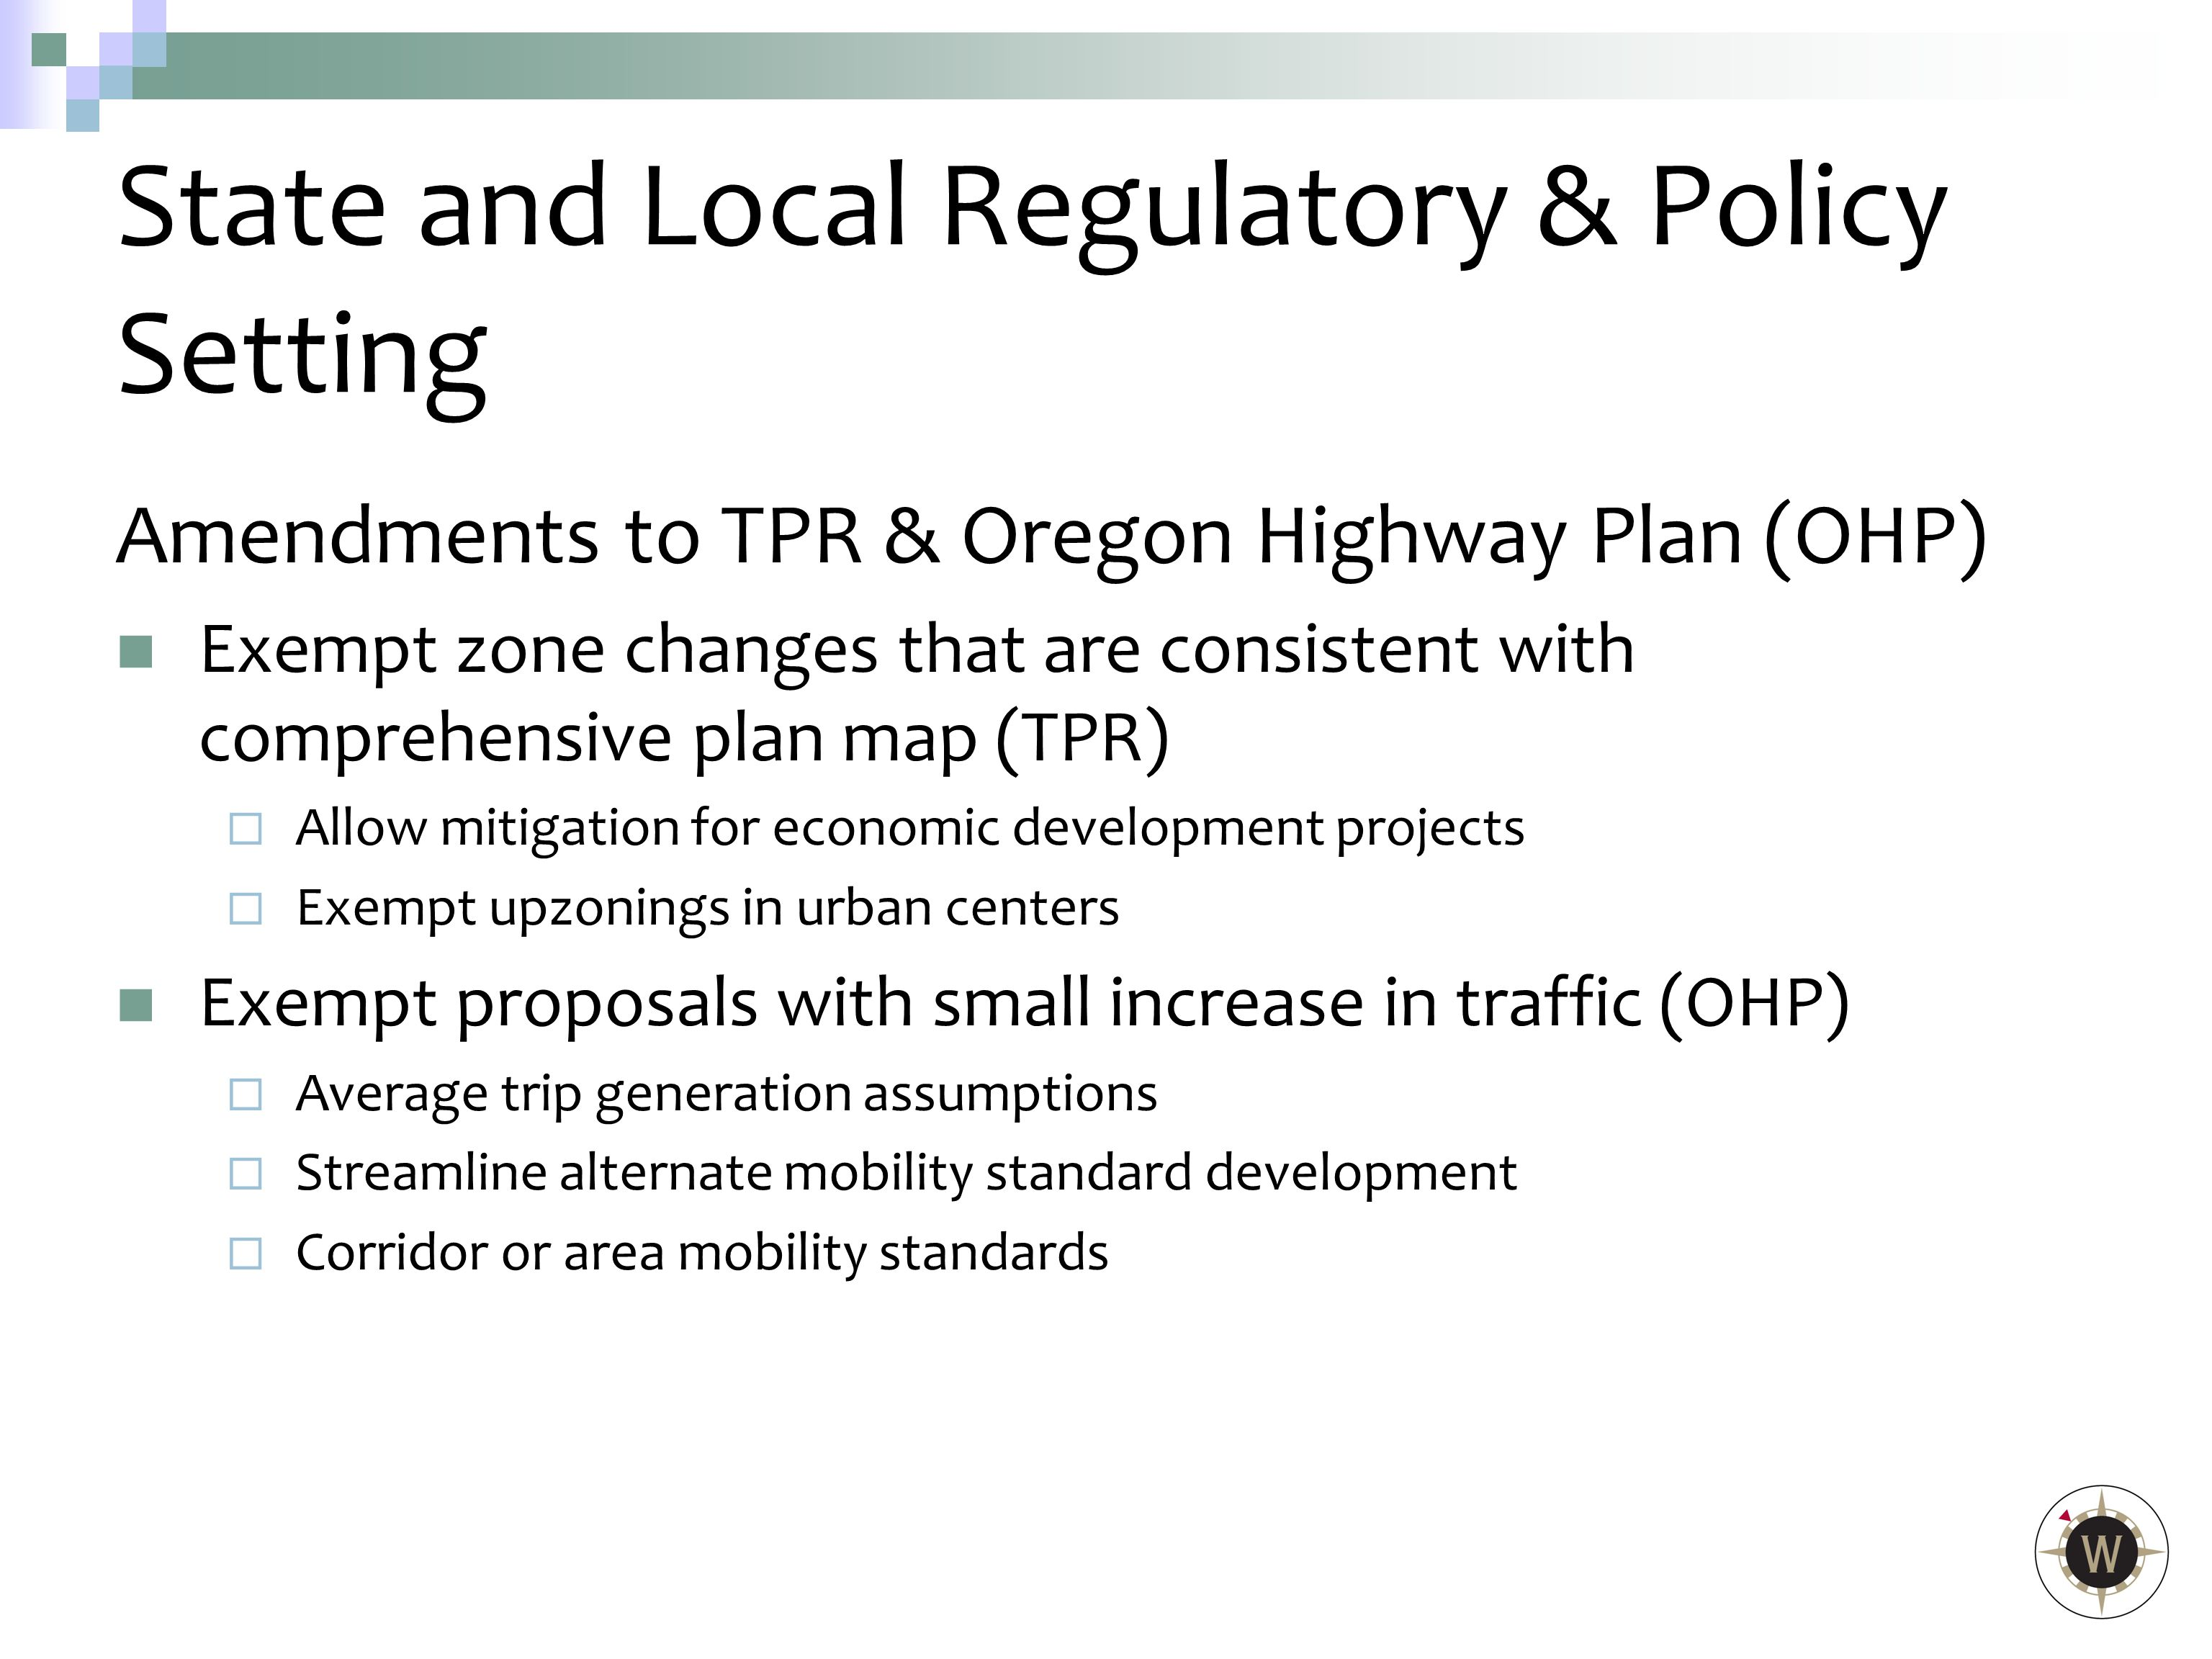 Amendments to TPR & Oregon Highway Plan (OHP) Exempt zone changes that are consistent with comprehensive plan map (TPR)  Allow mitigation for economic development projects  Exempt upzonings in urban centers Exempt proposals with small increase in traffic (OHP)  Average trip generation assumptions  Streamline alternate mobility standard development  Corridor or area mobility standards State and Local Regulatory & Policy Setting